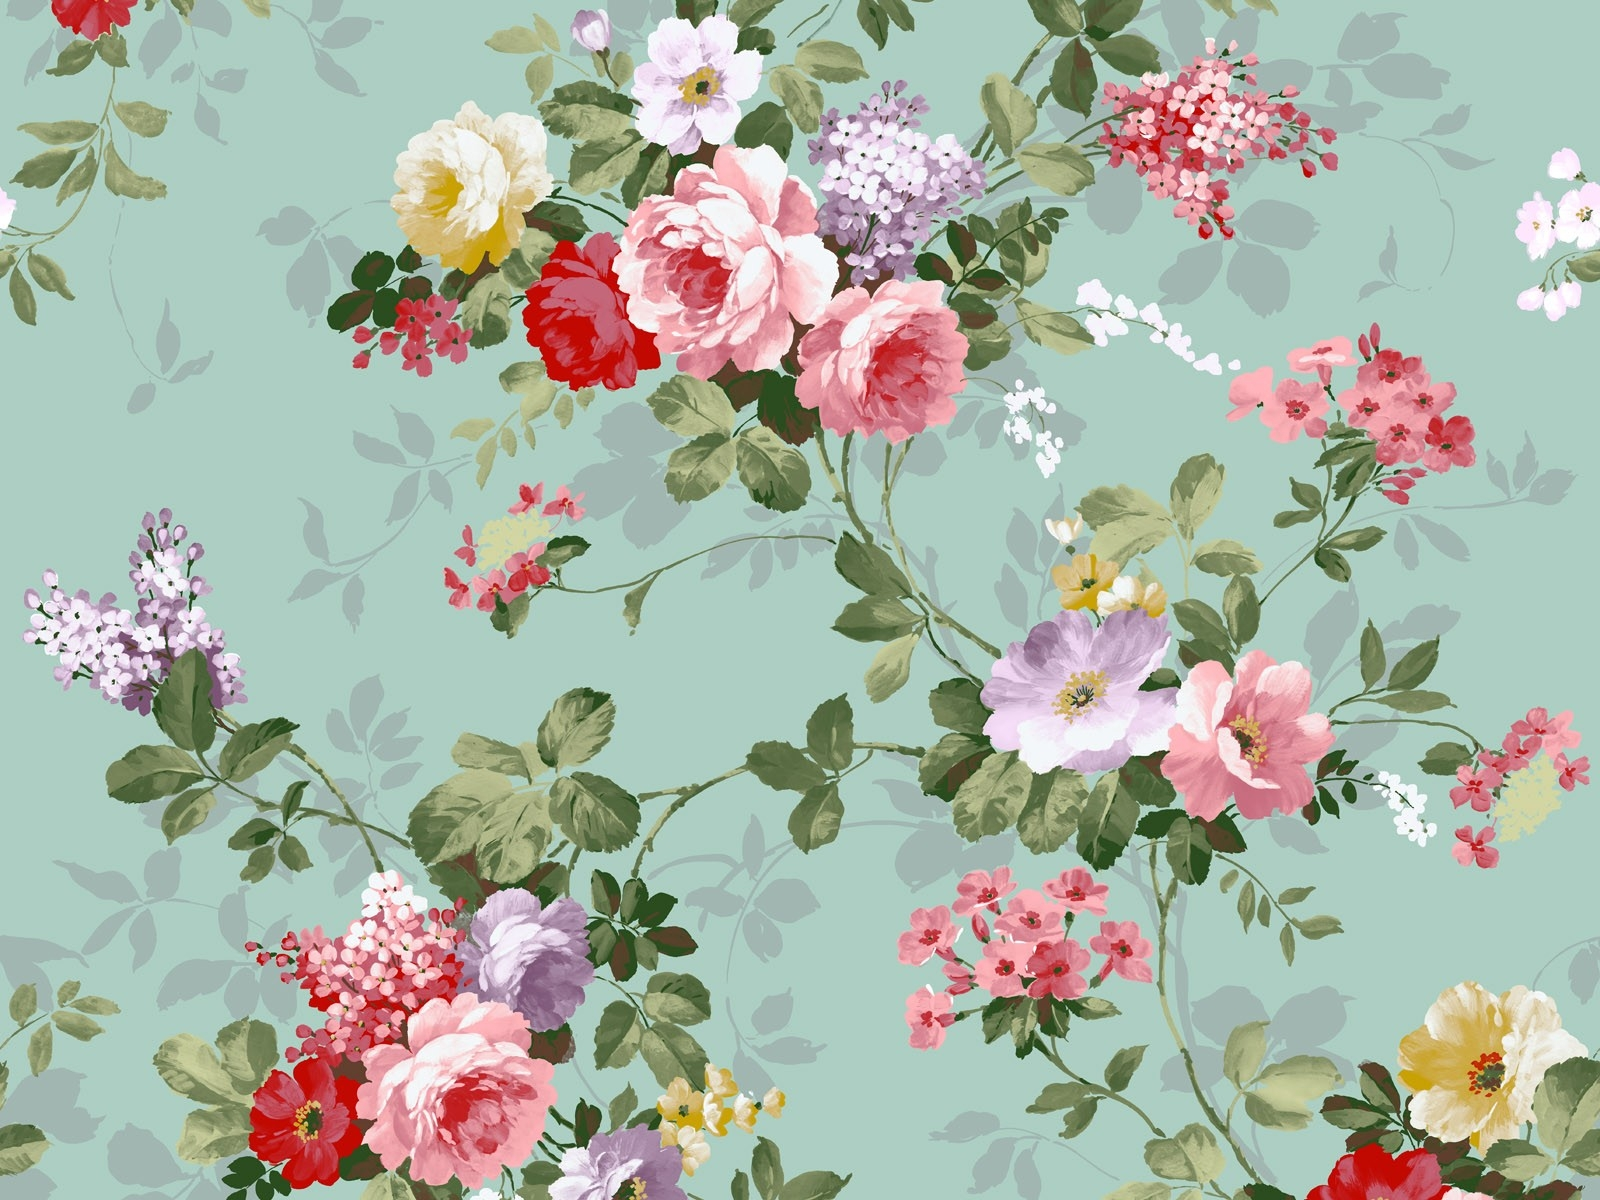 amazing vintage floral iphone wallpaper tumblr